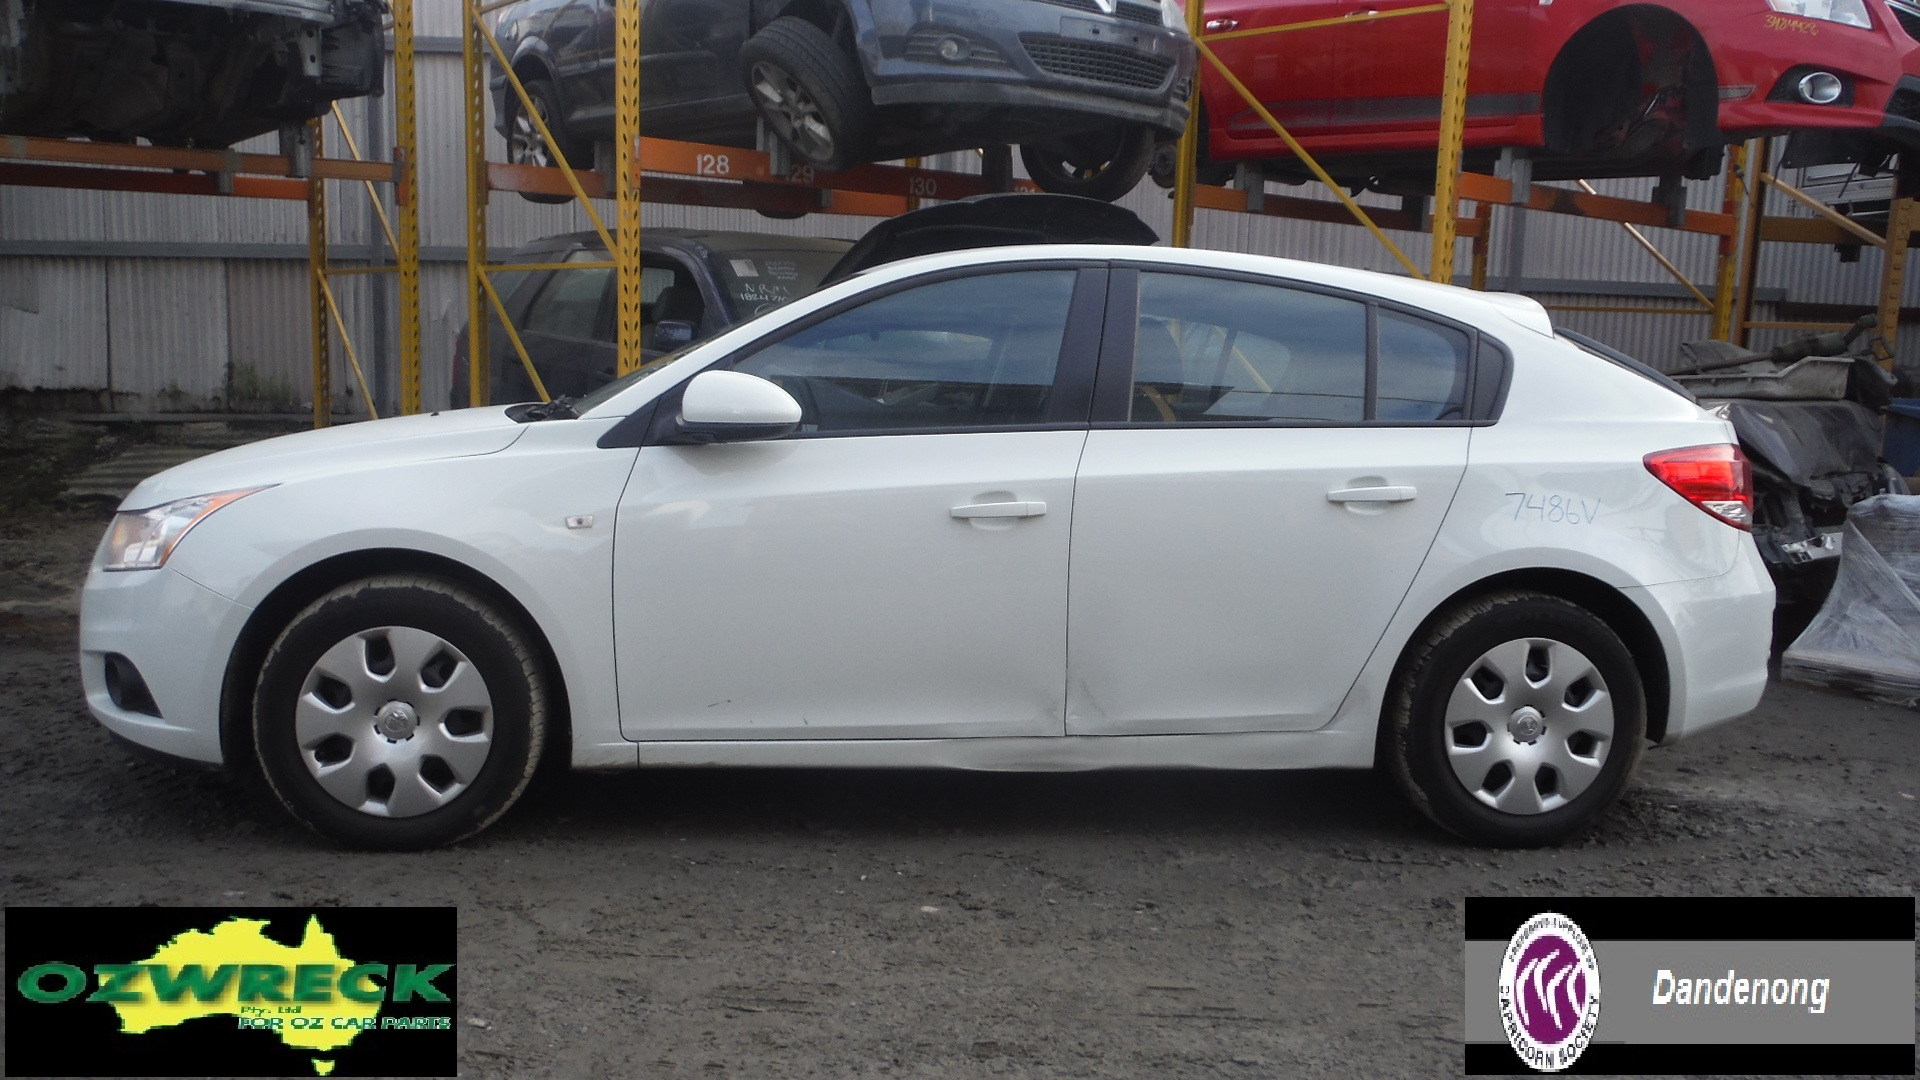 2012 HOLDEN CRUZE JH, 5 DOOR HATCH